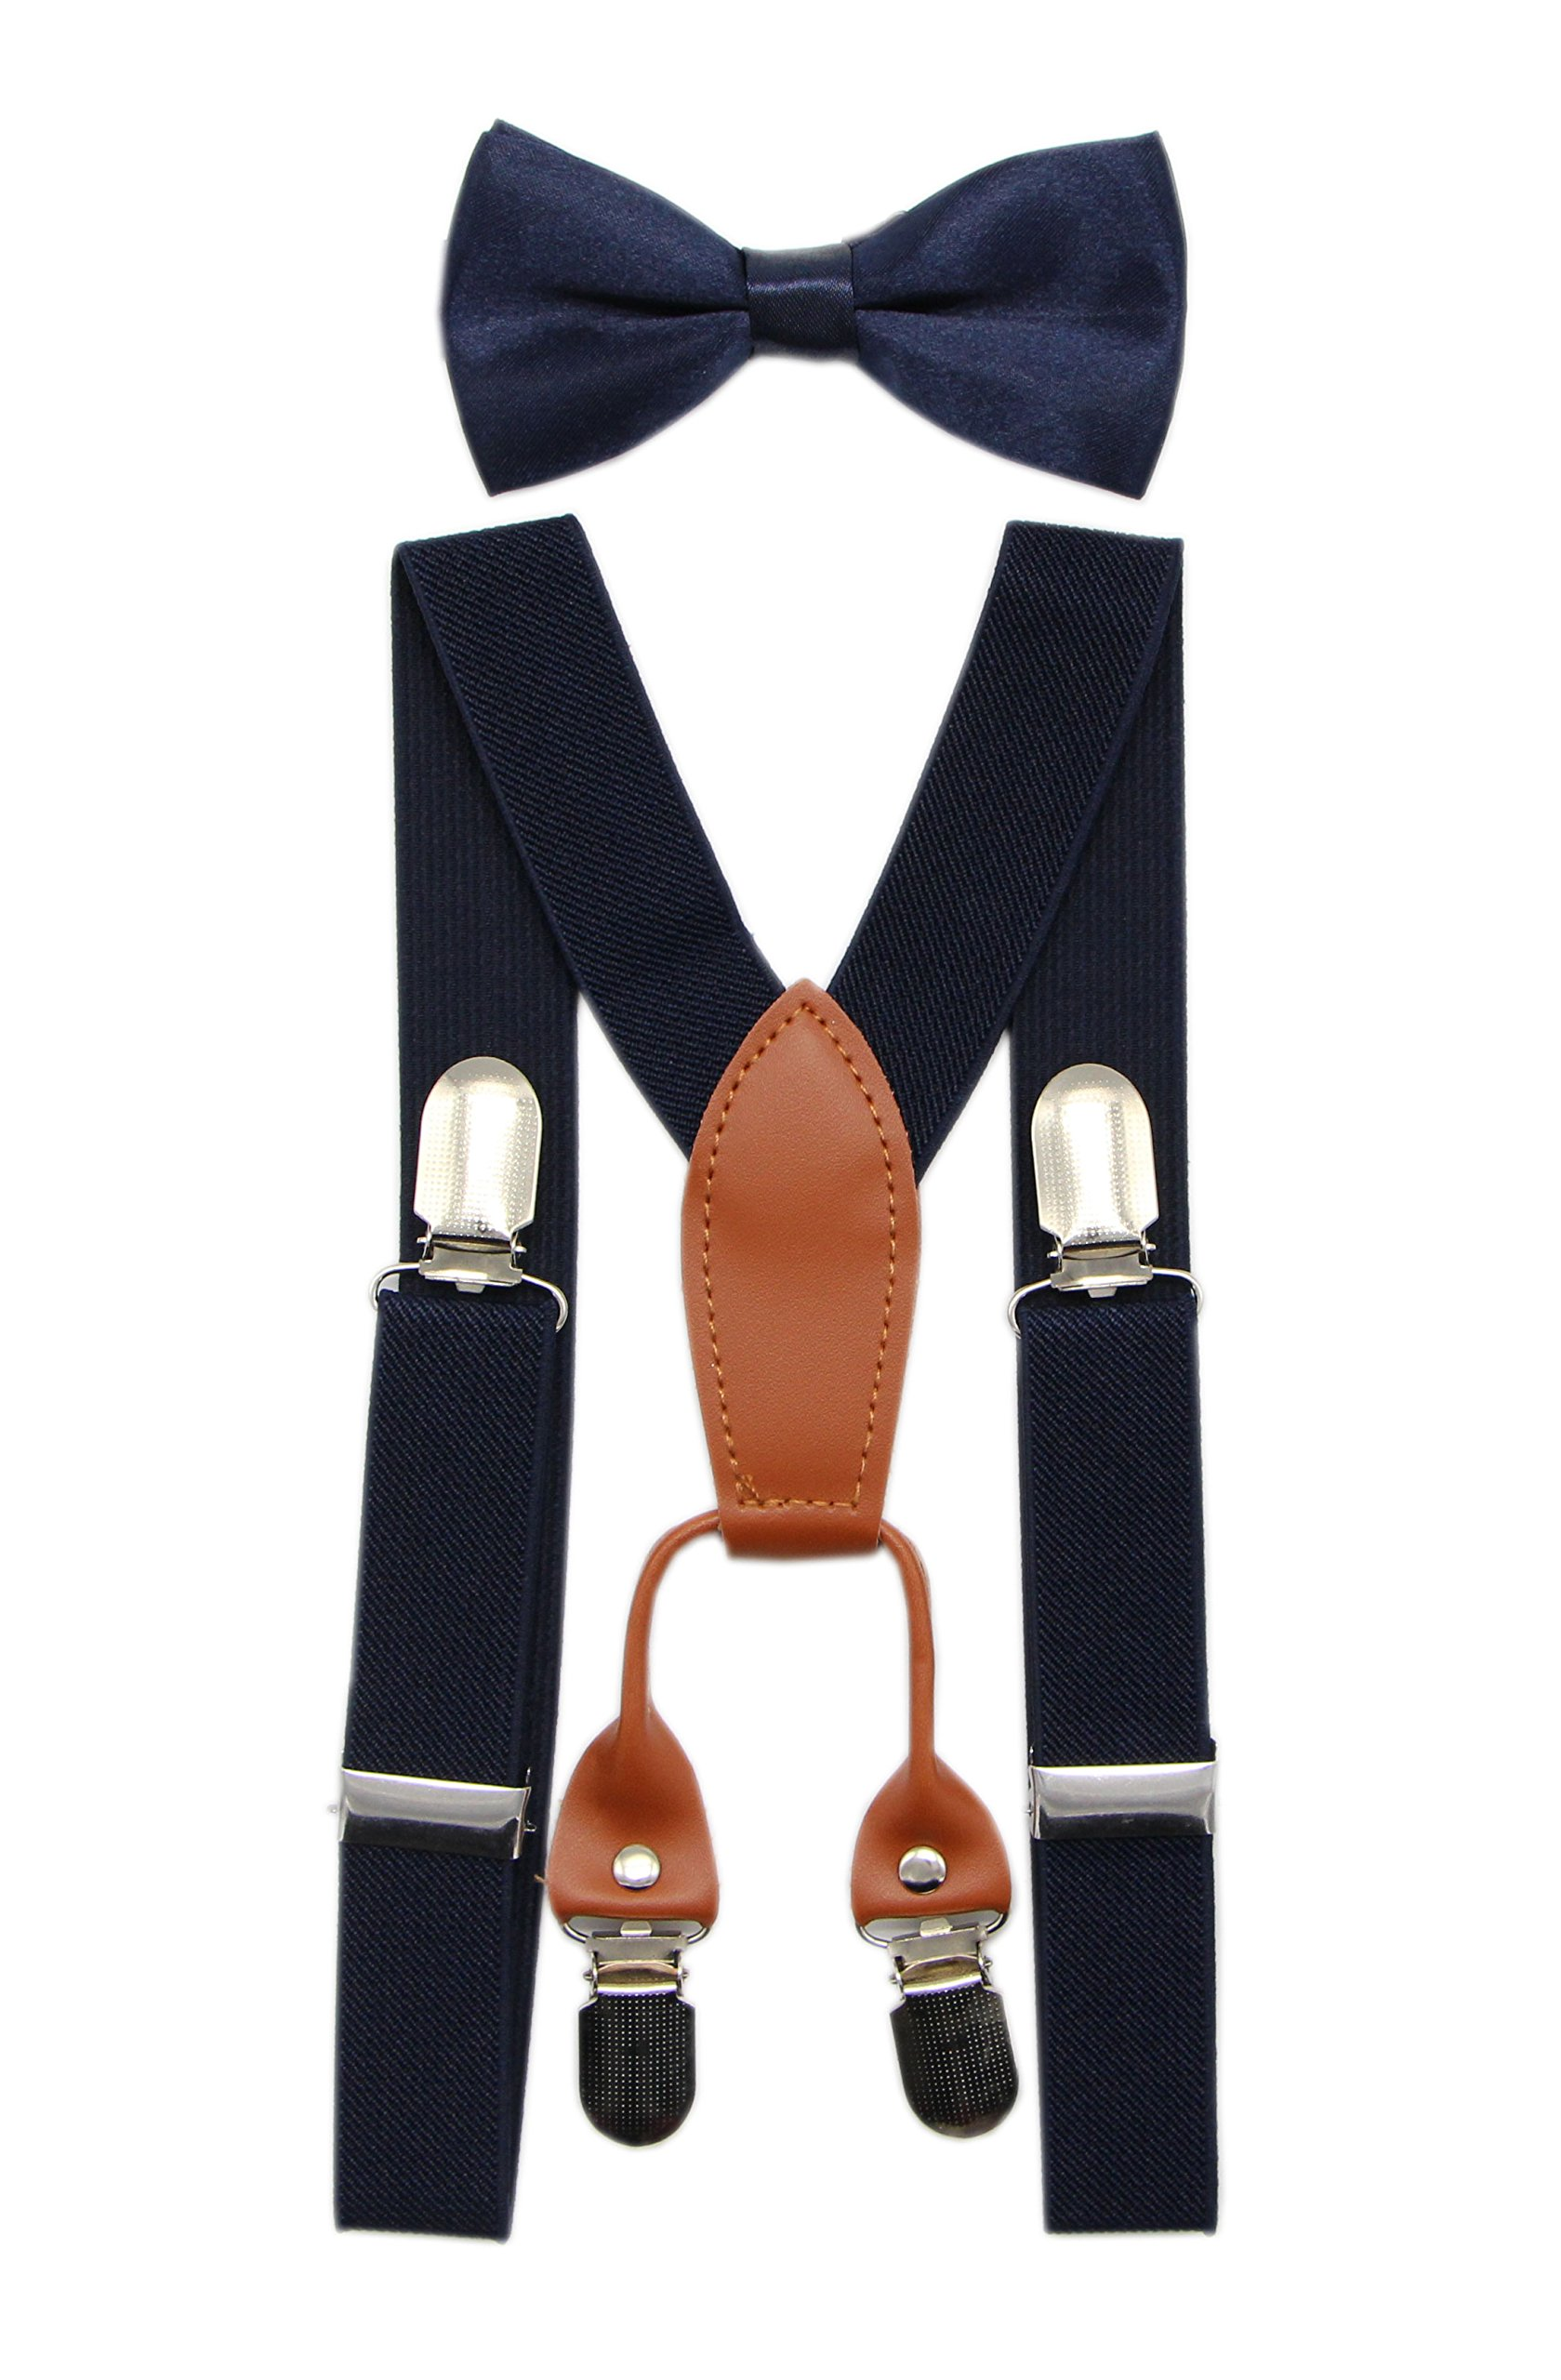 JAIFEI Toddler Kids 4 Clips Adjustable Suspenders and Matching Bow Tie Set (Navy) by JAIFEI